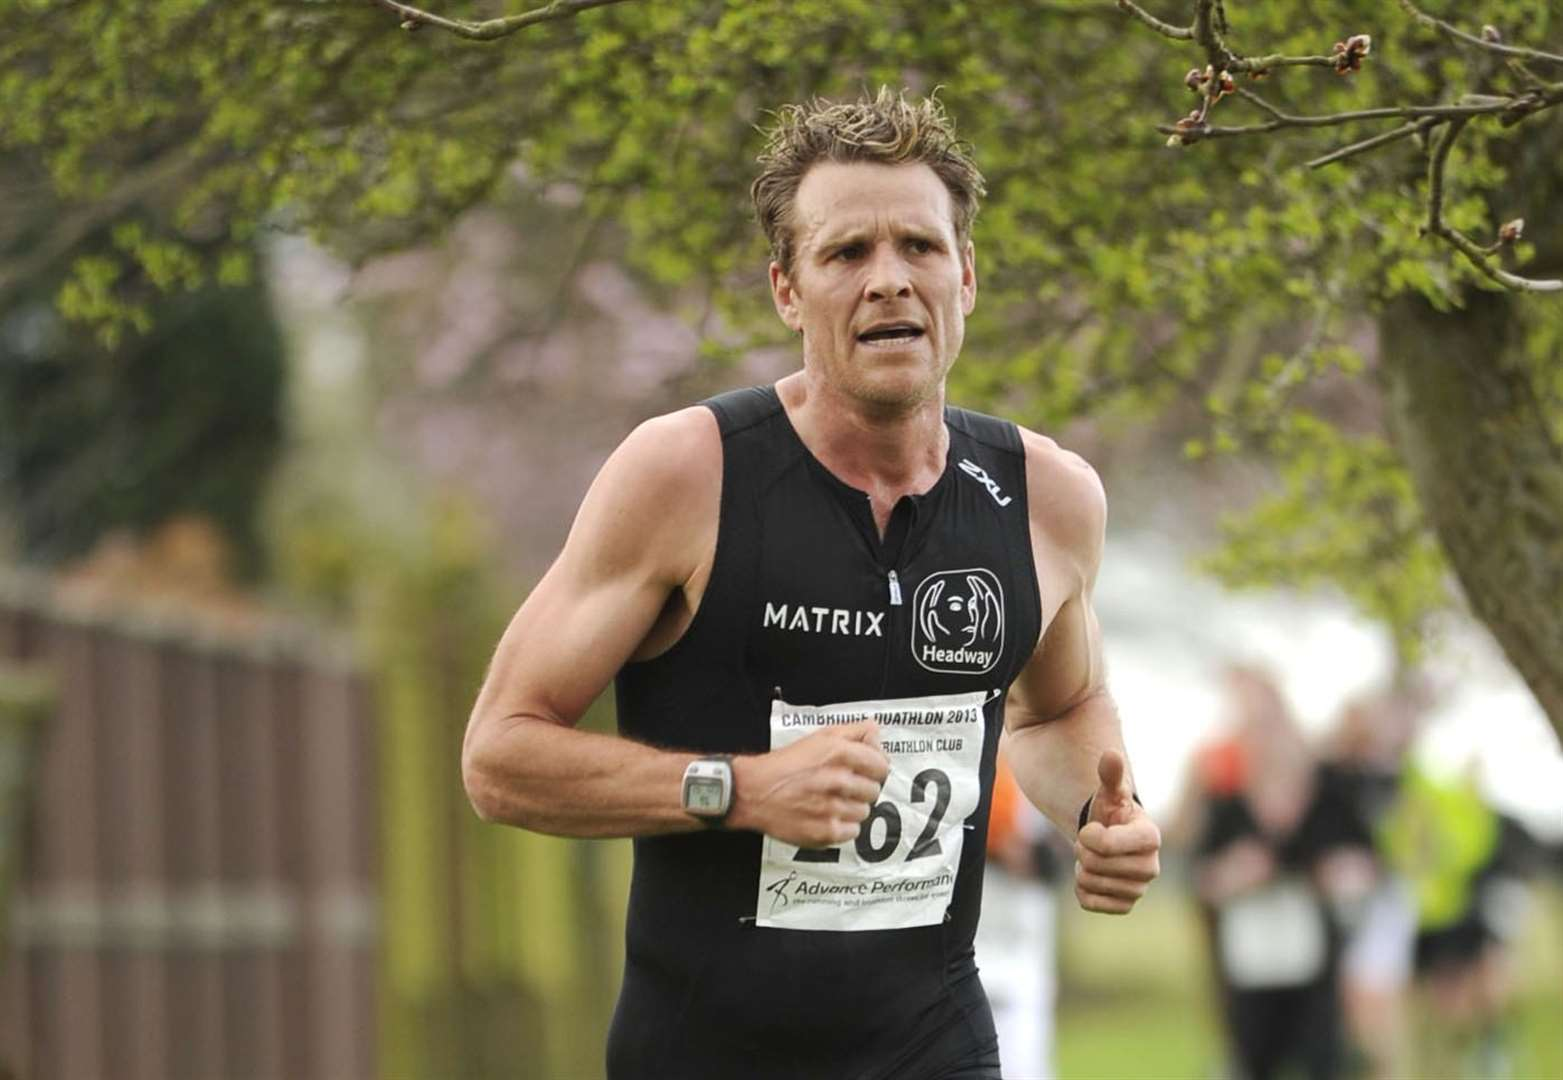 Double Olympic gold medallist James Cracknell to create Boat Race history for Cambridge University